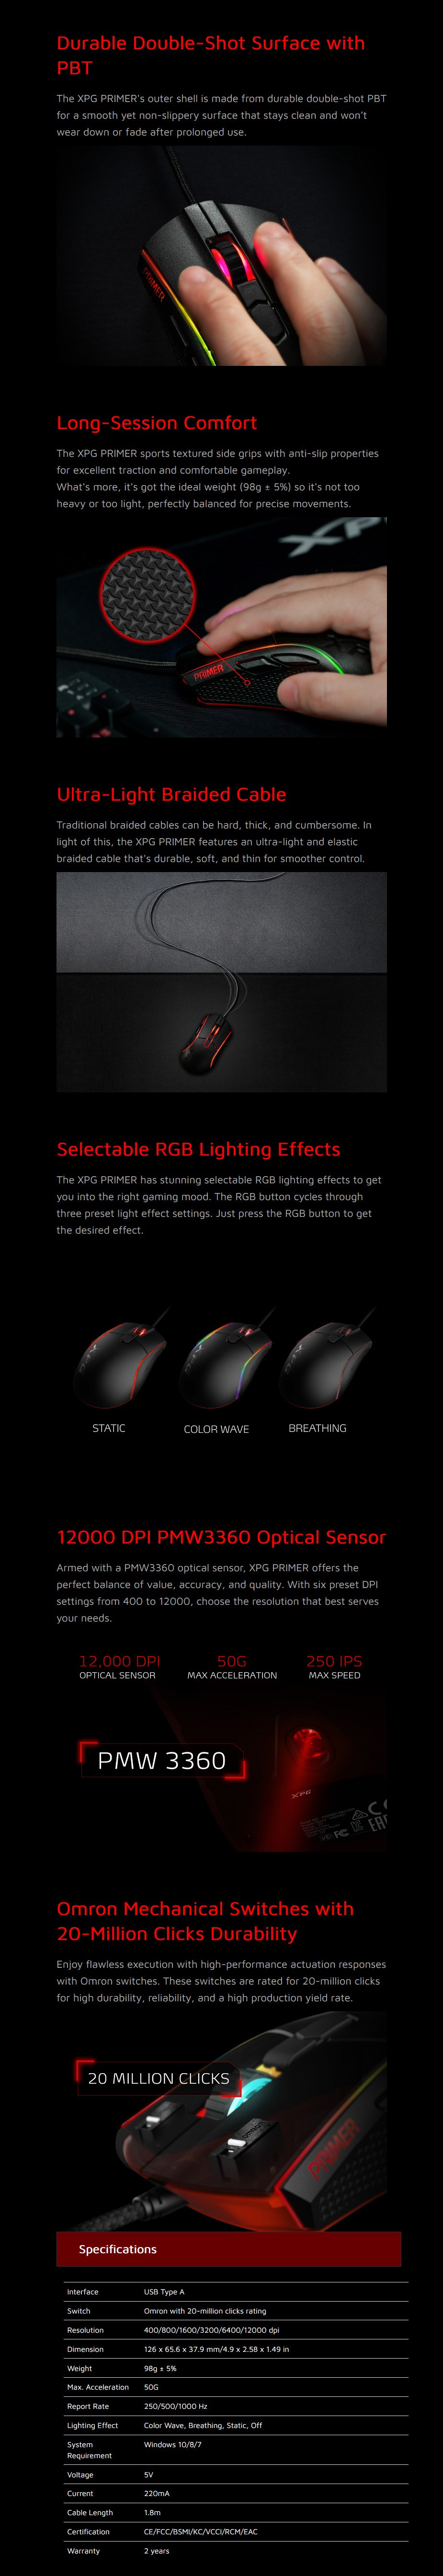 ADATA XPG PRIMER Optical Gaming Mouse - Overview 1